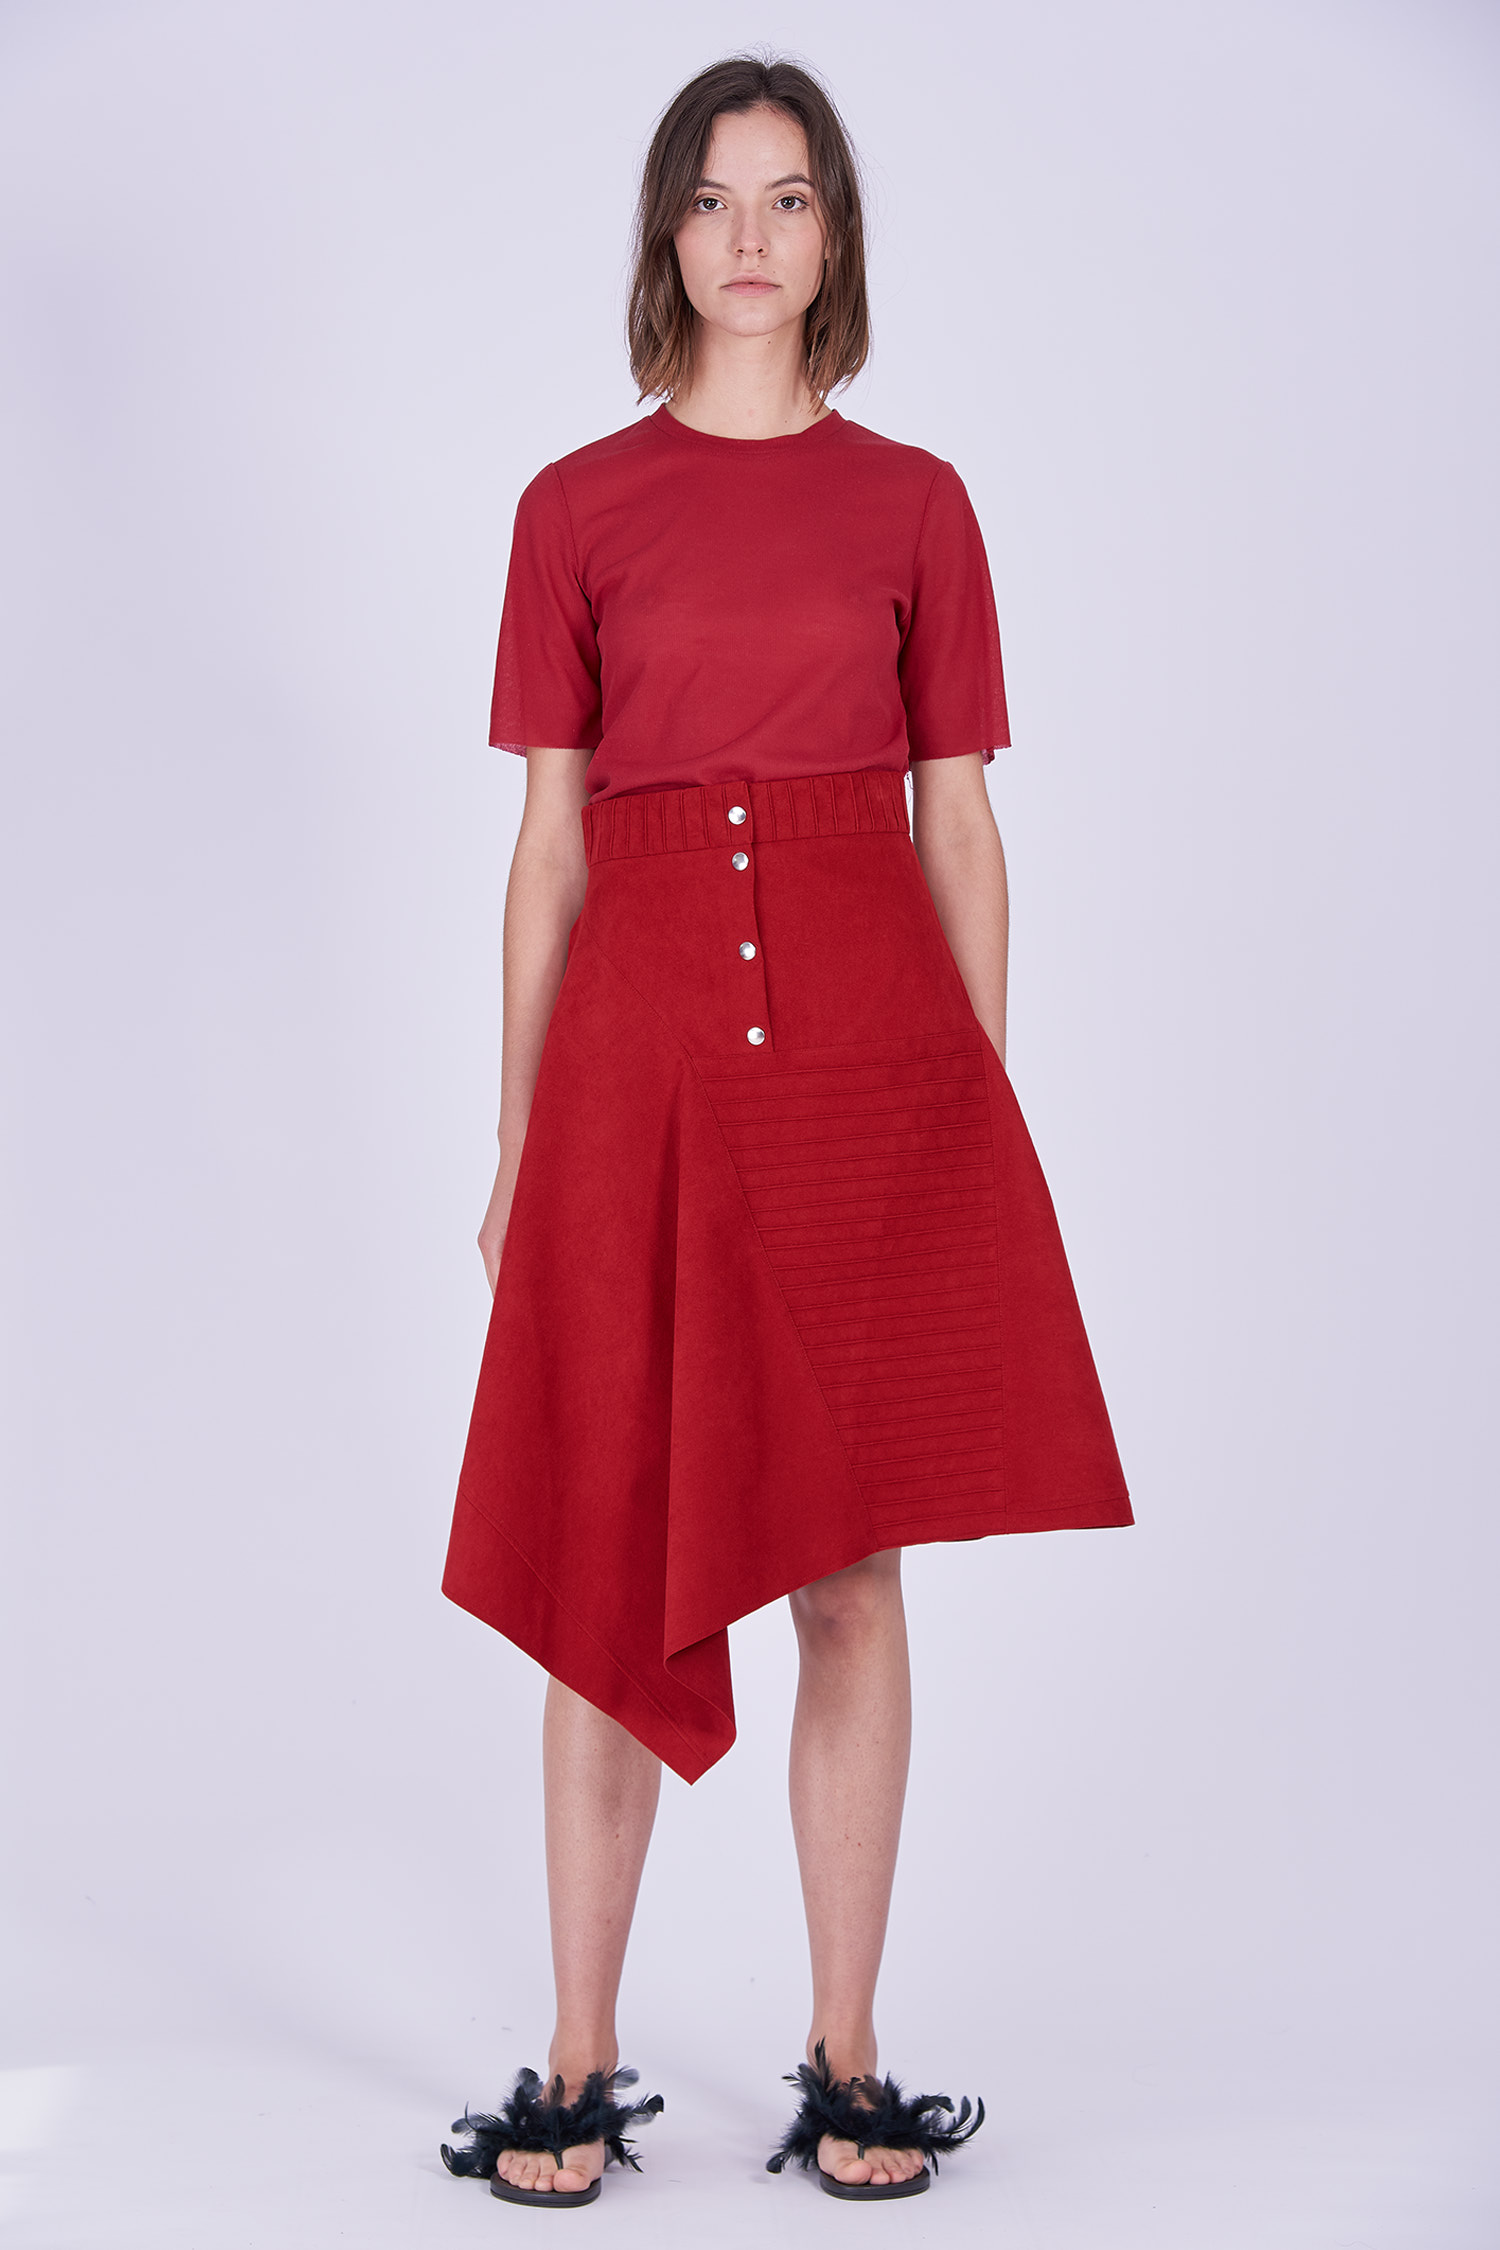 Acephala Ps2020 Red Midi Asymmetric Button Closure Skirt T Shirt Construction Czerwona Spodnica Konstrukcyjna Czerwony Front